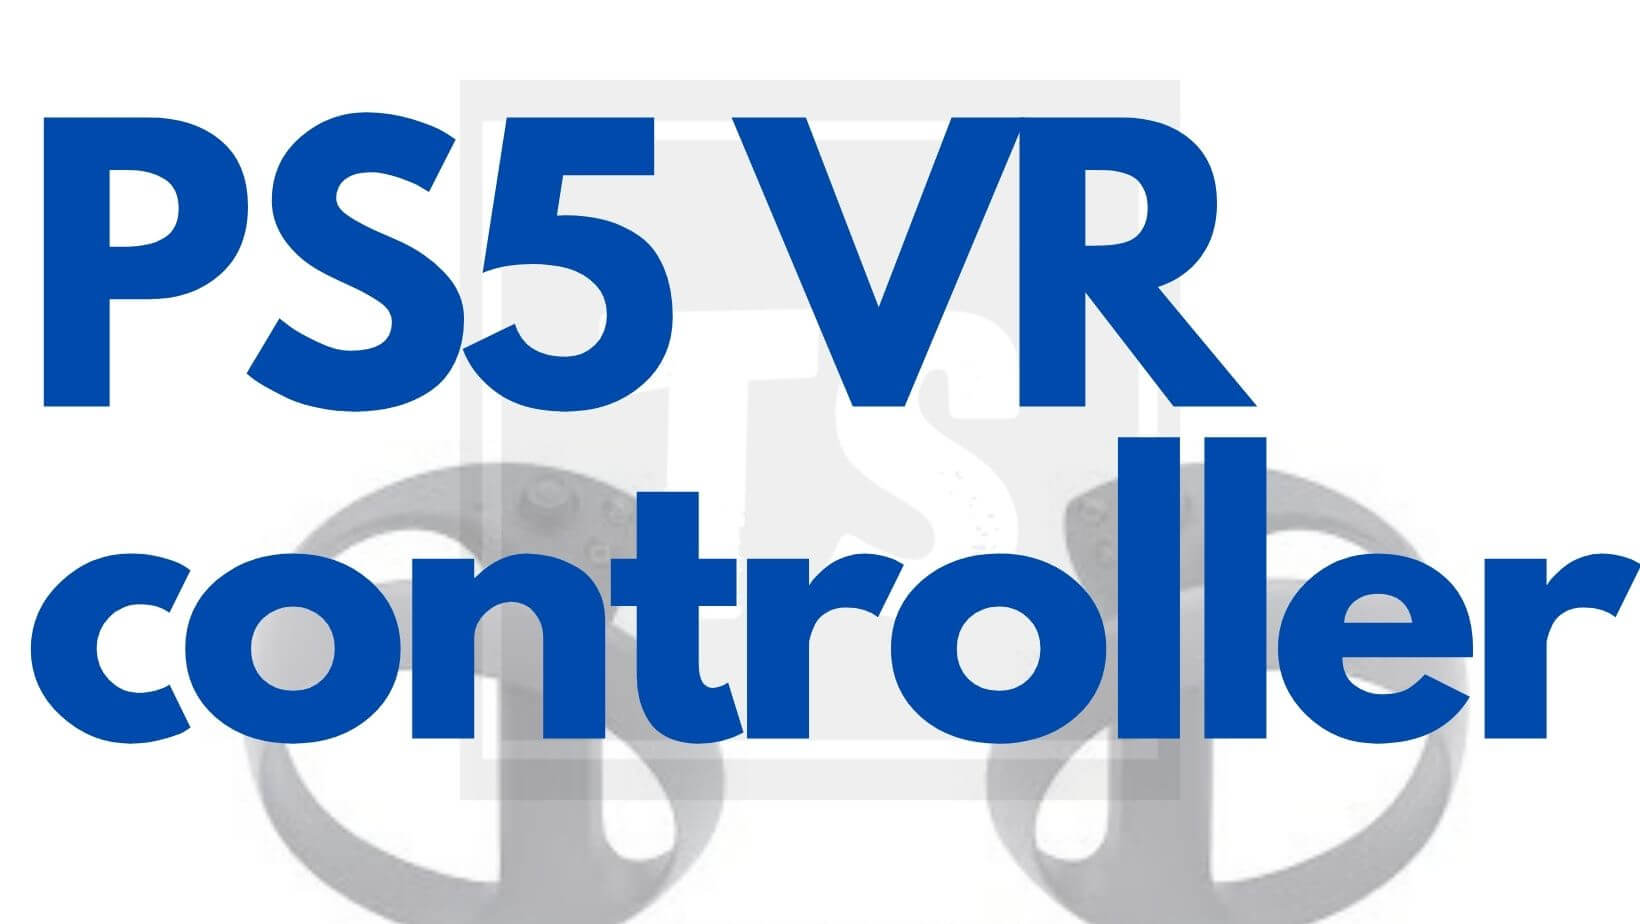 PS5 VR controller: Design, Features